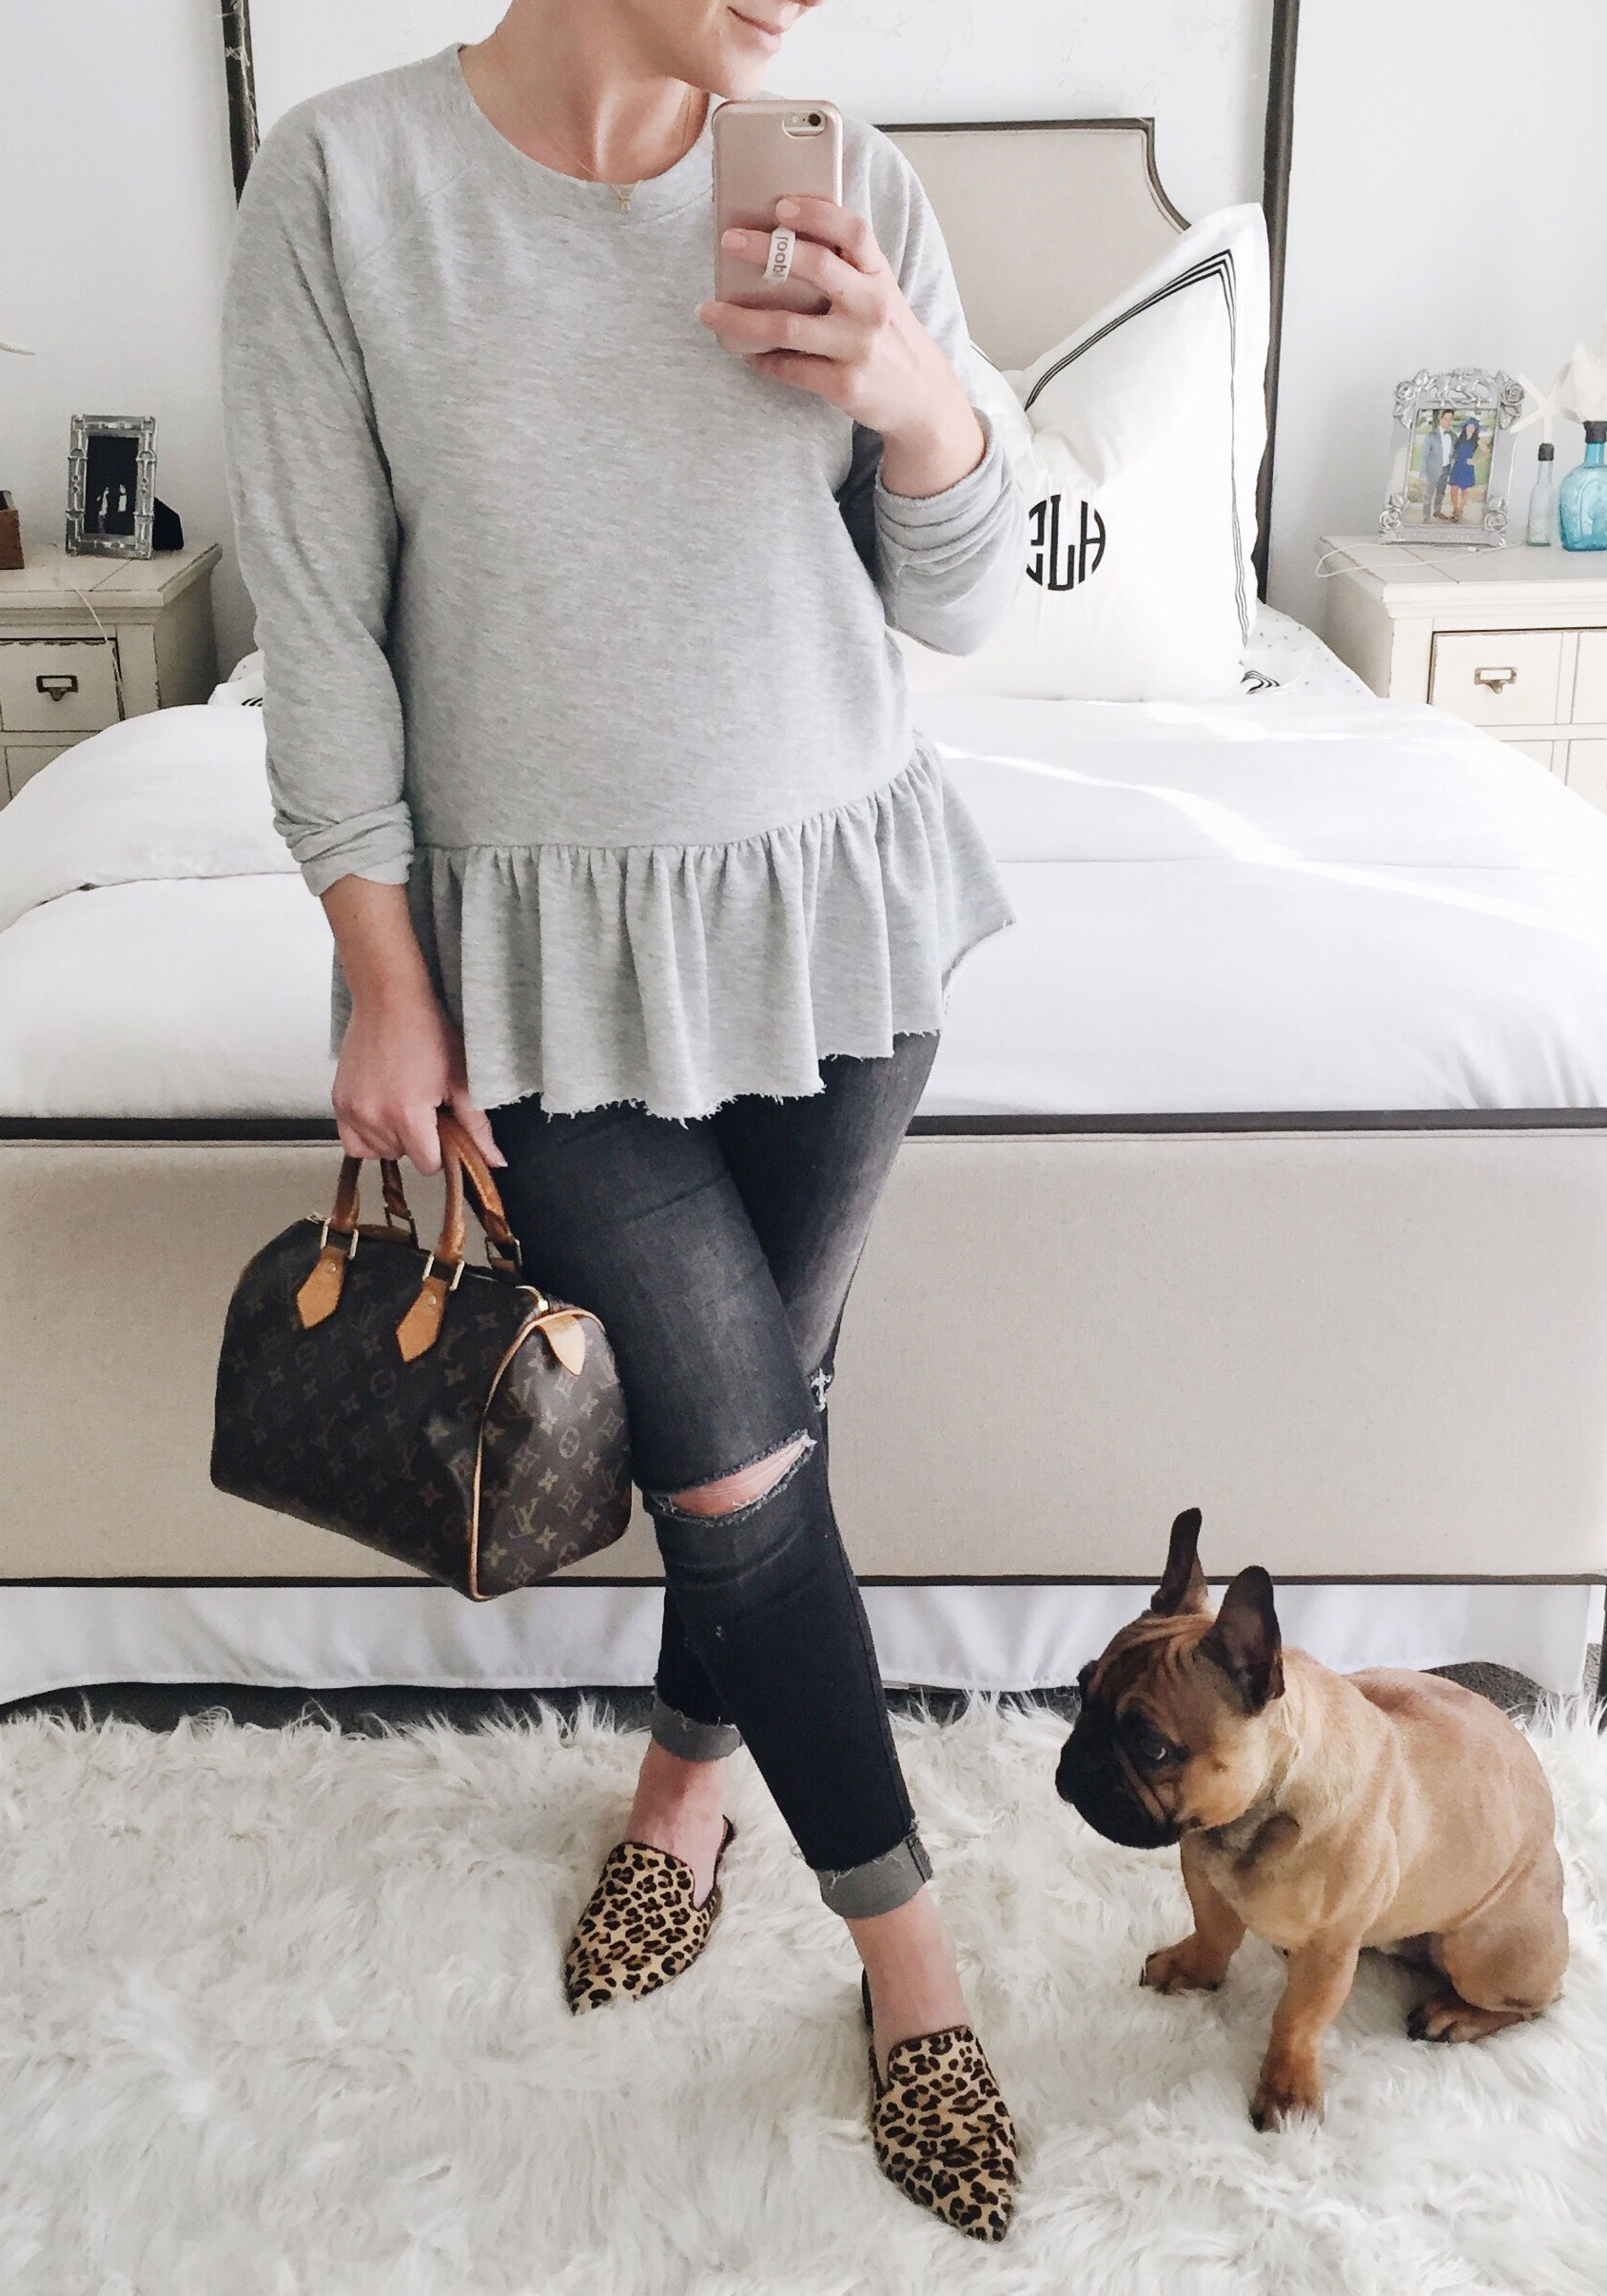 Second trimester maternity outfit. Peplum sweatshirt with gray distressed jeans and leopard slides.